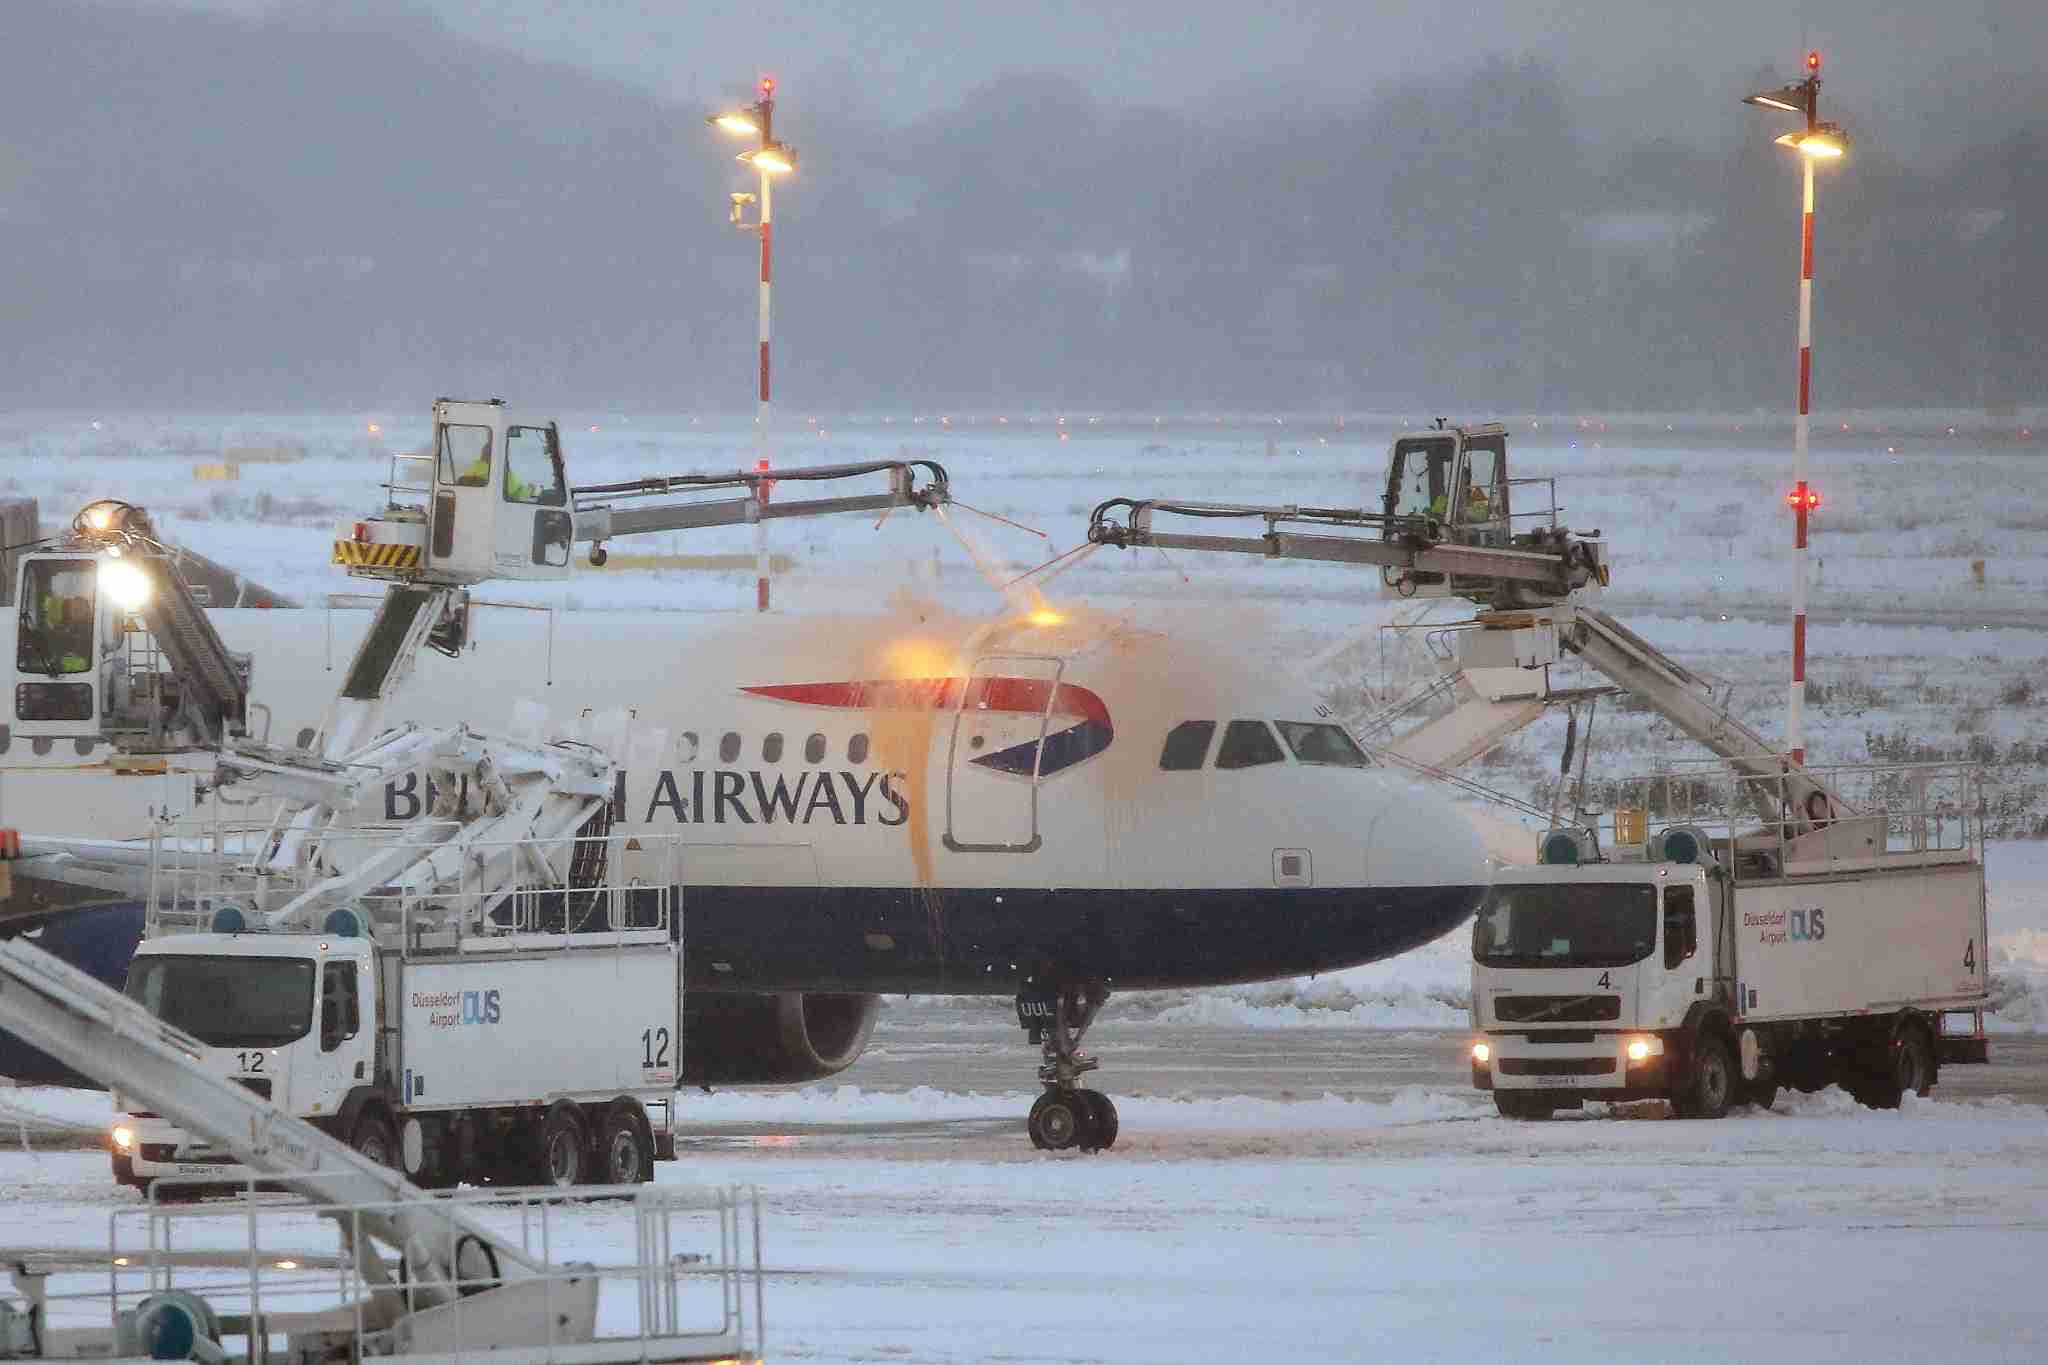 An aeroplane undergoes de-icing before taking off at the Düsseldorf Airport in Düsseldorf, Germany, 10 December 2017. Photo: David Young/dpa (Photo by David Young/picture alliance via Getty Images)